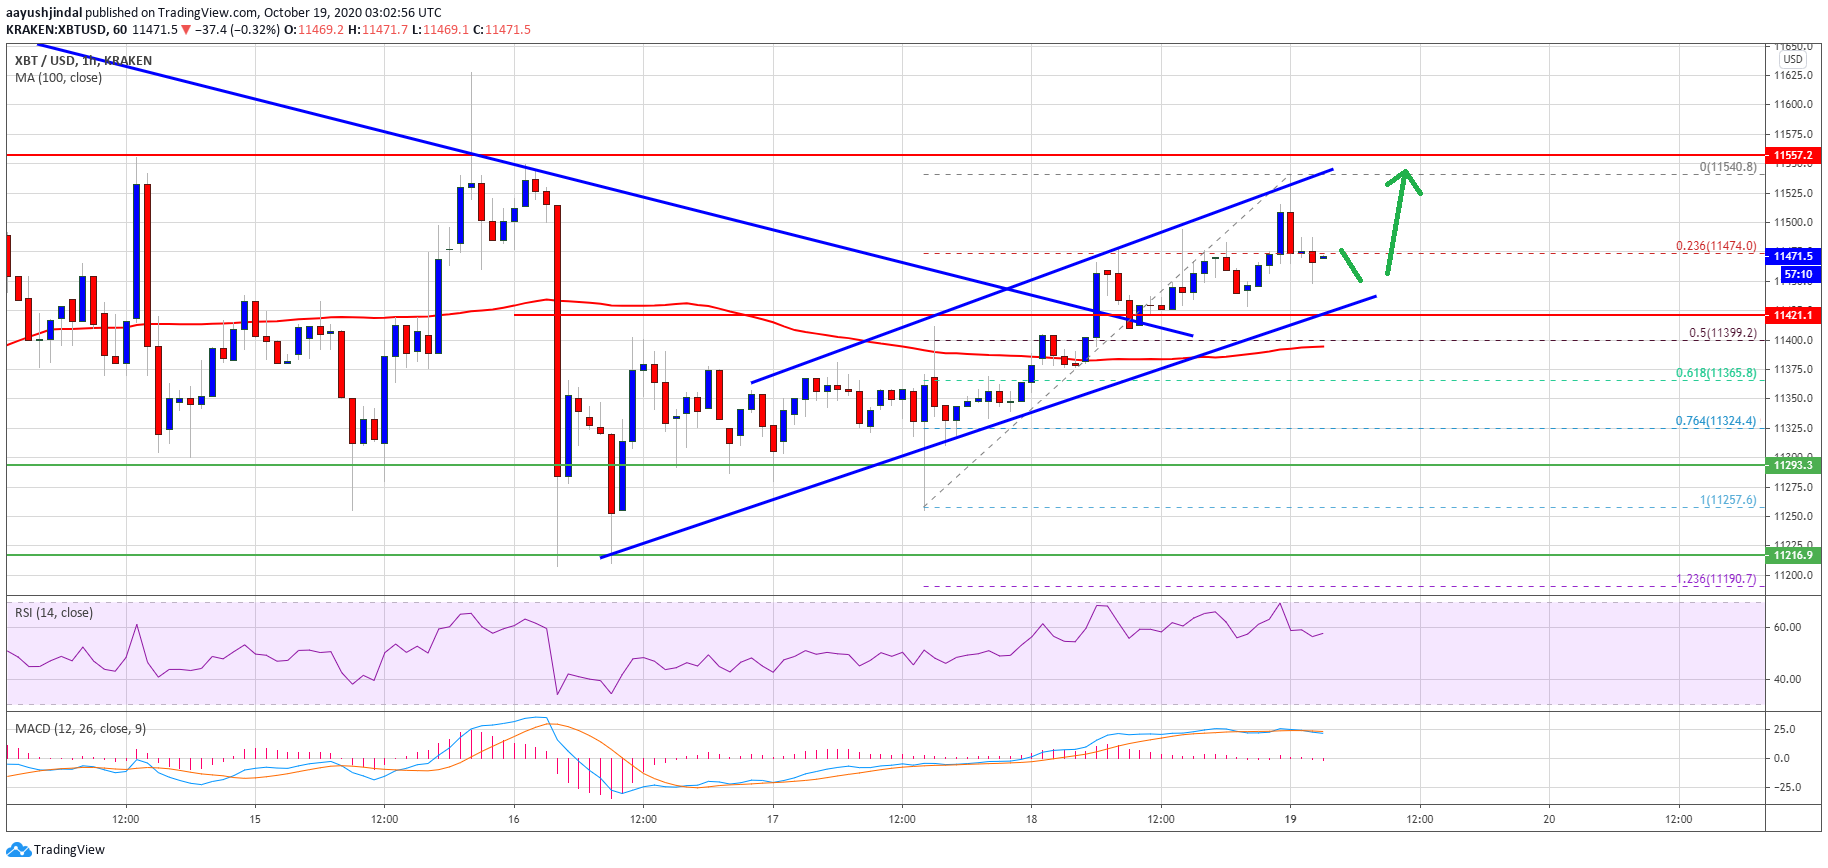 TA: Bitcoin Hesitates Below $11,550, But Upside Break To $12K Seems Likely